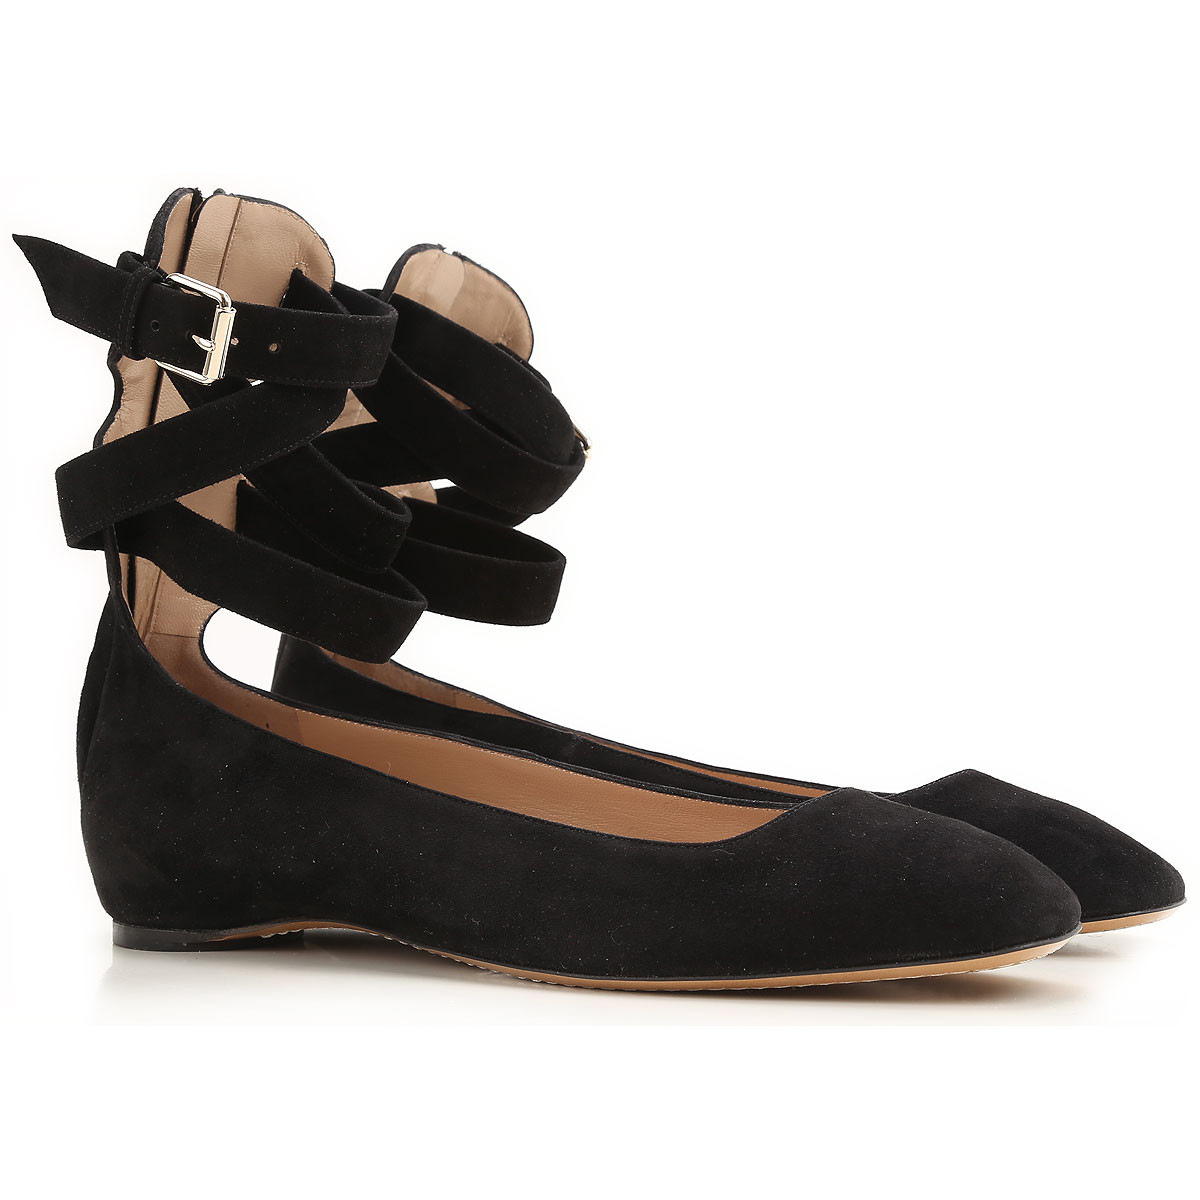 Valentino Garavani Ballet Flats Ballerina Shoes for Women On Sale in Outlet, Black, Suede leather, 2019, 10 6 7 8.5 9 9.5